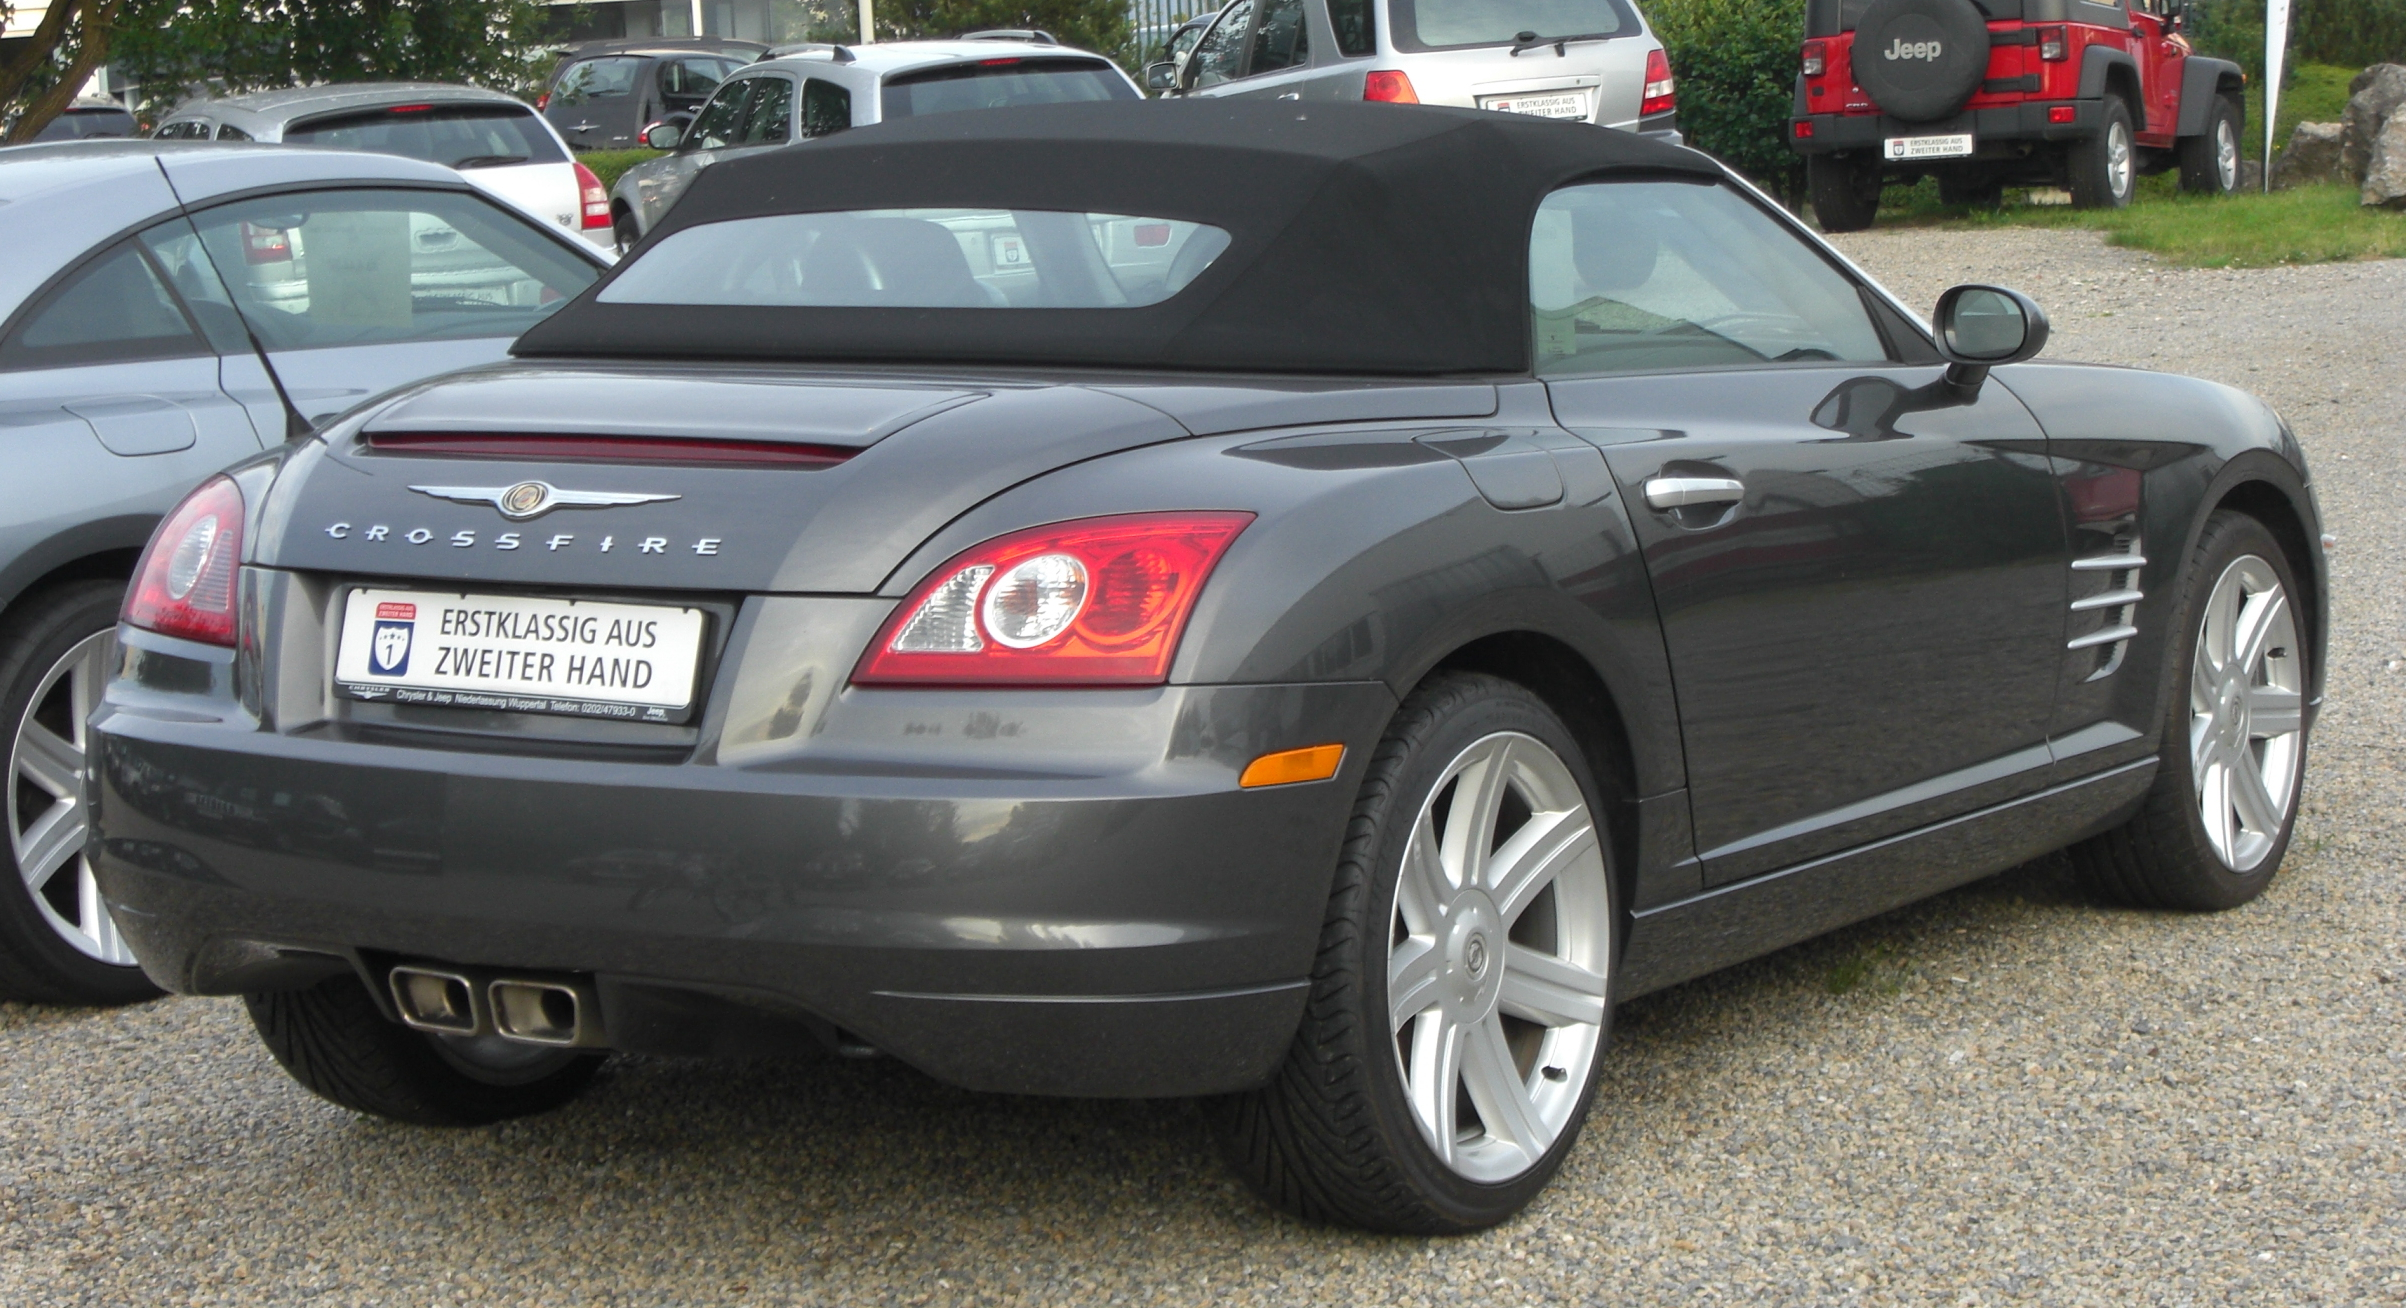 2016 Chrysler Crossfire Features Review | 2016 - 2017 Best Cars Review